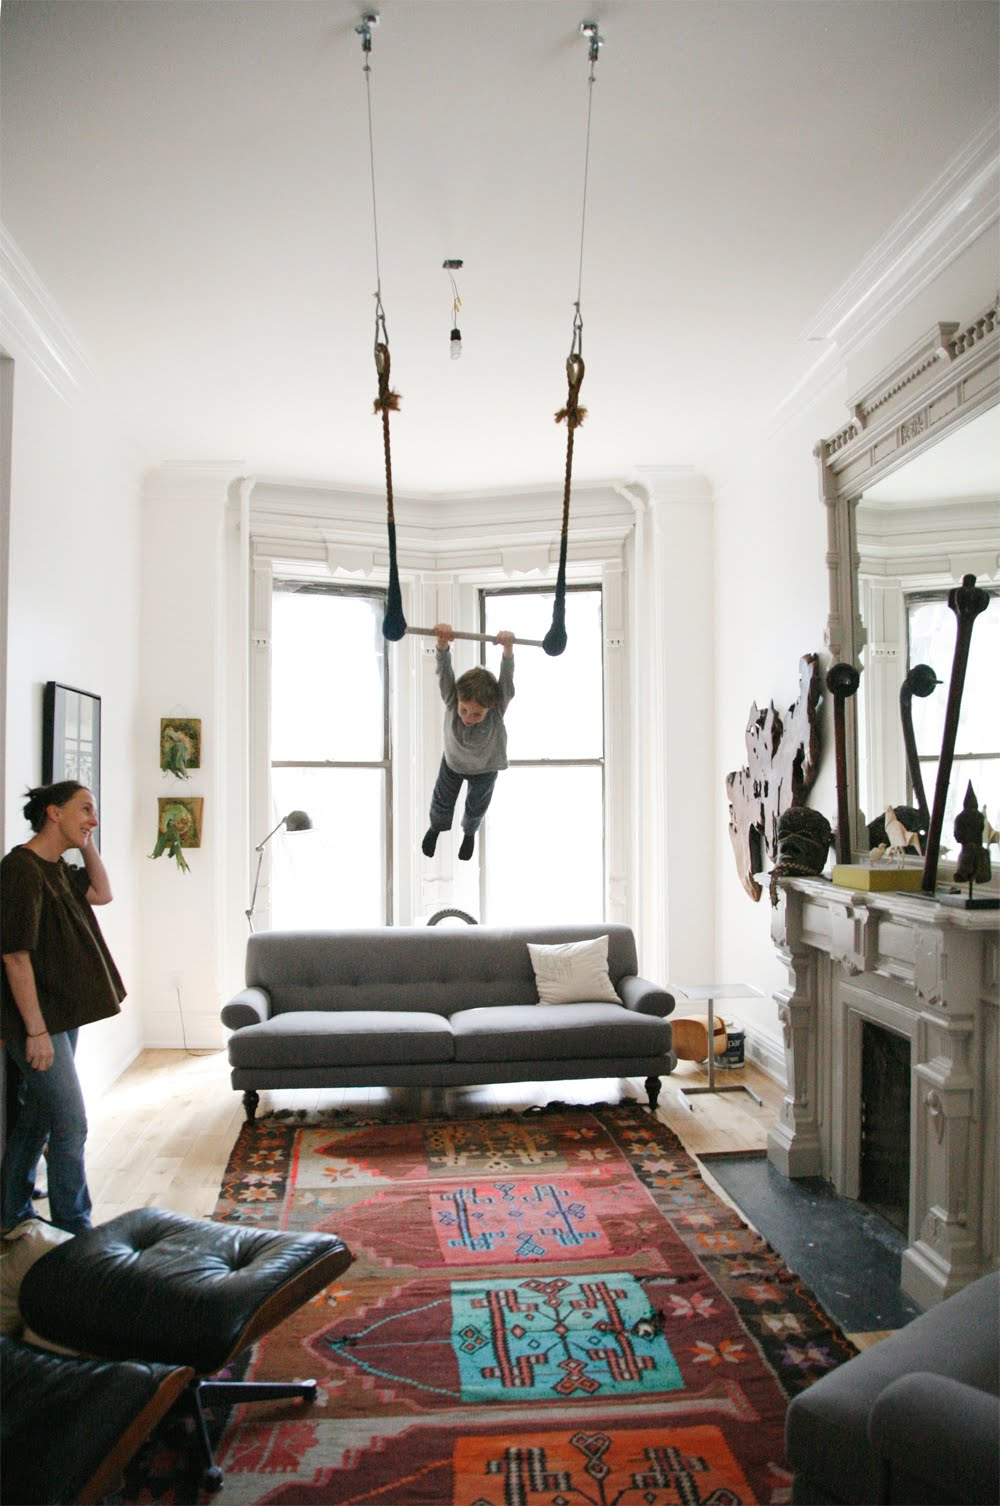 I Have Two Kids: Living room trapeze